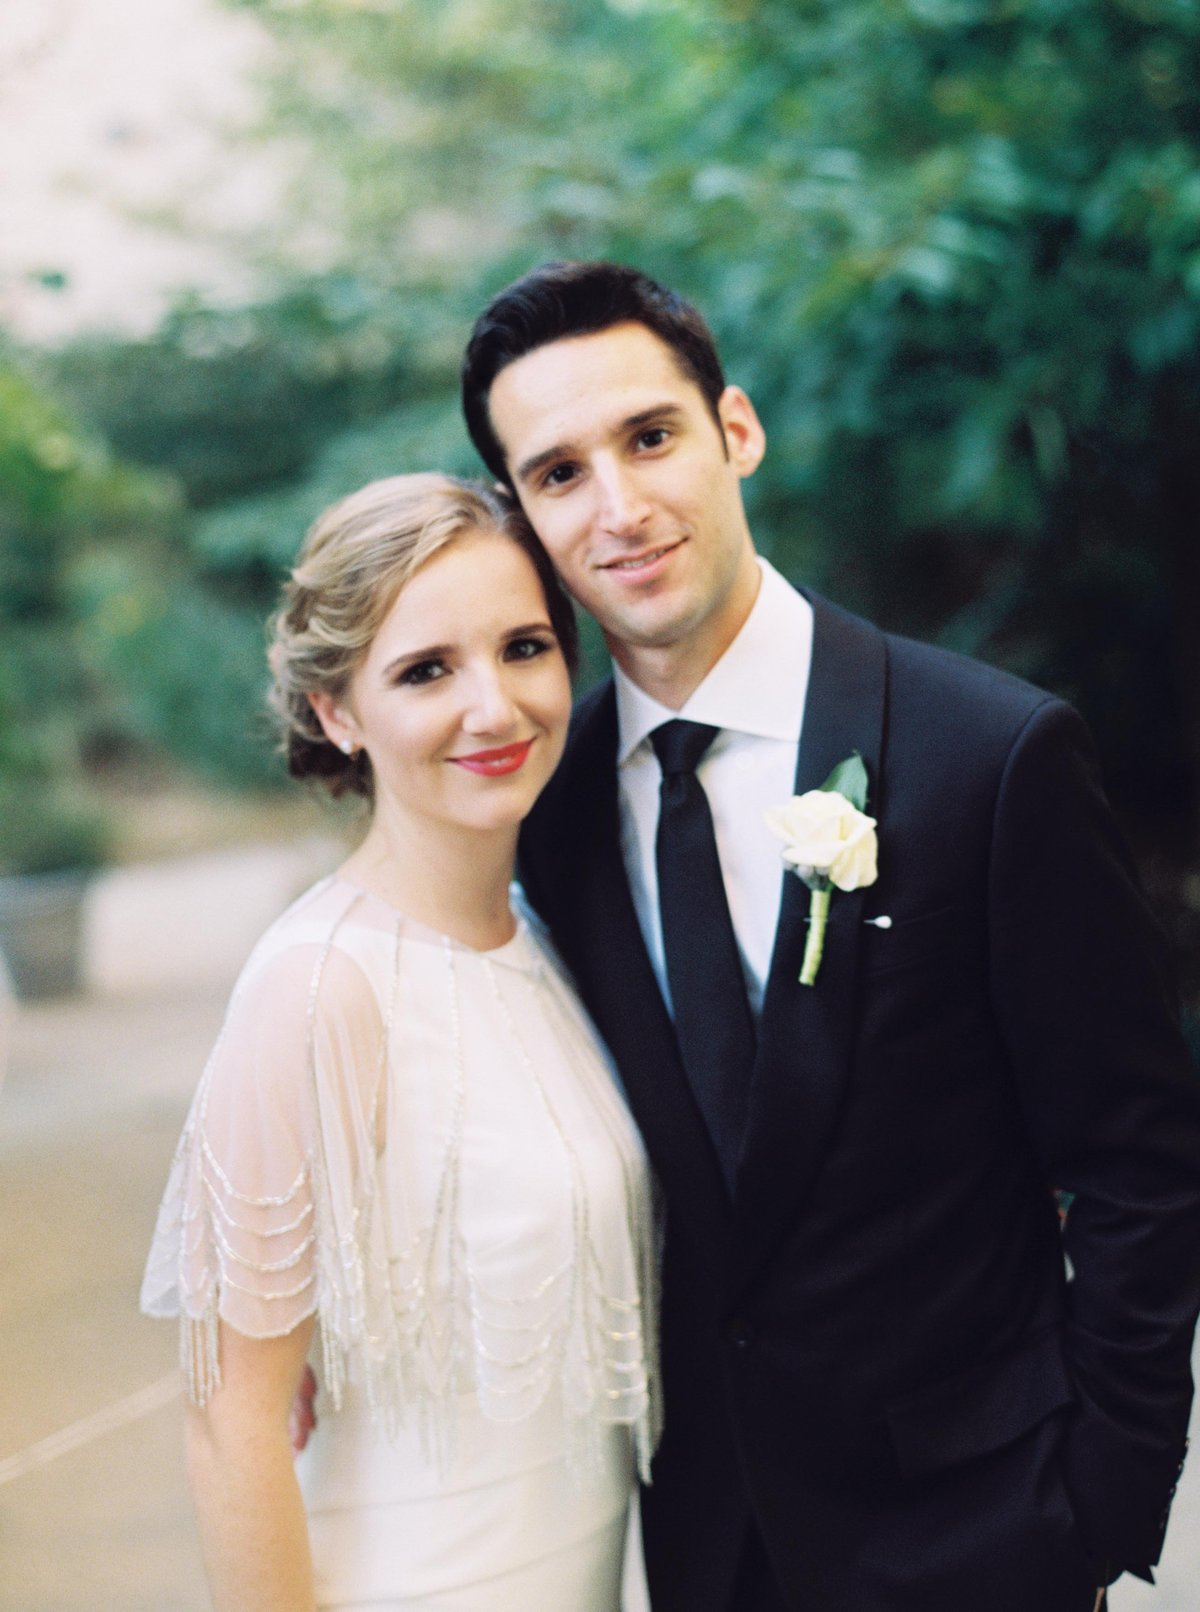 MatoliKeelyPhotography_Kasey&Martin_Married_123